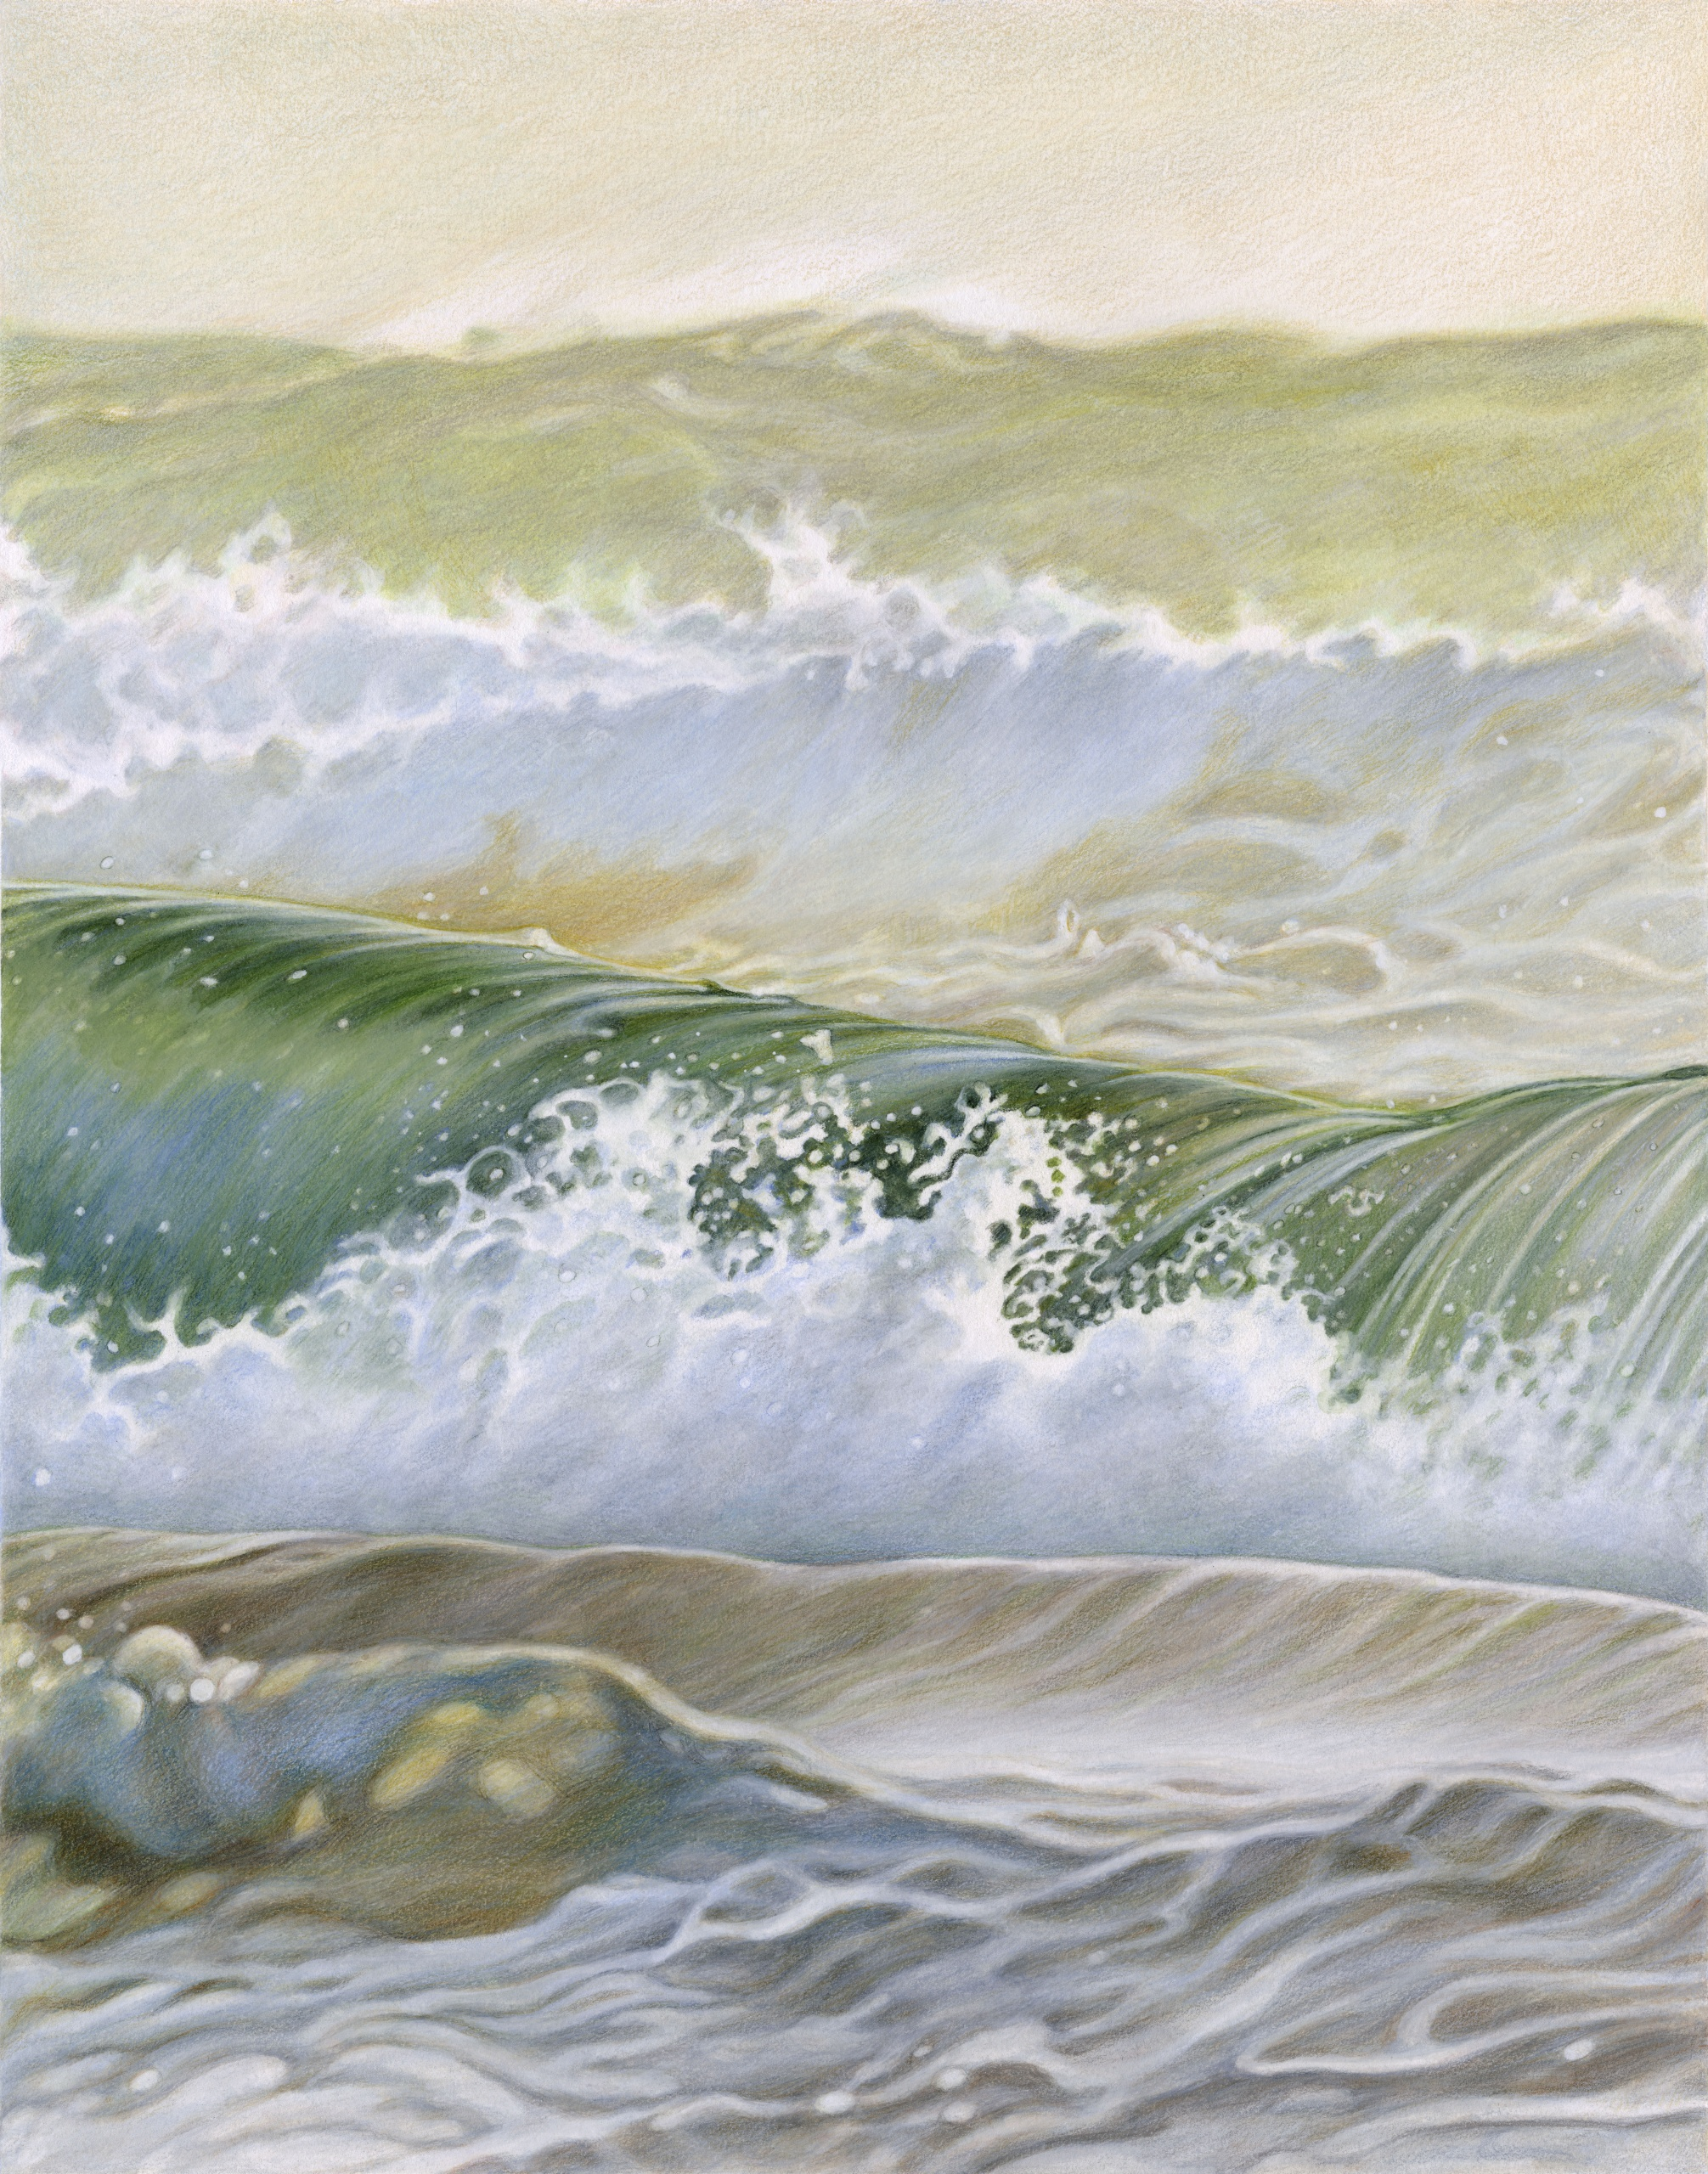 Ocean II,  2021, Colored pencil on mixed media board, 14 x 11 inches